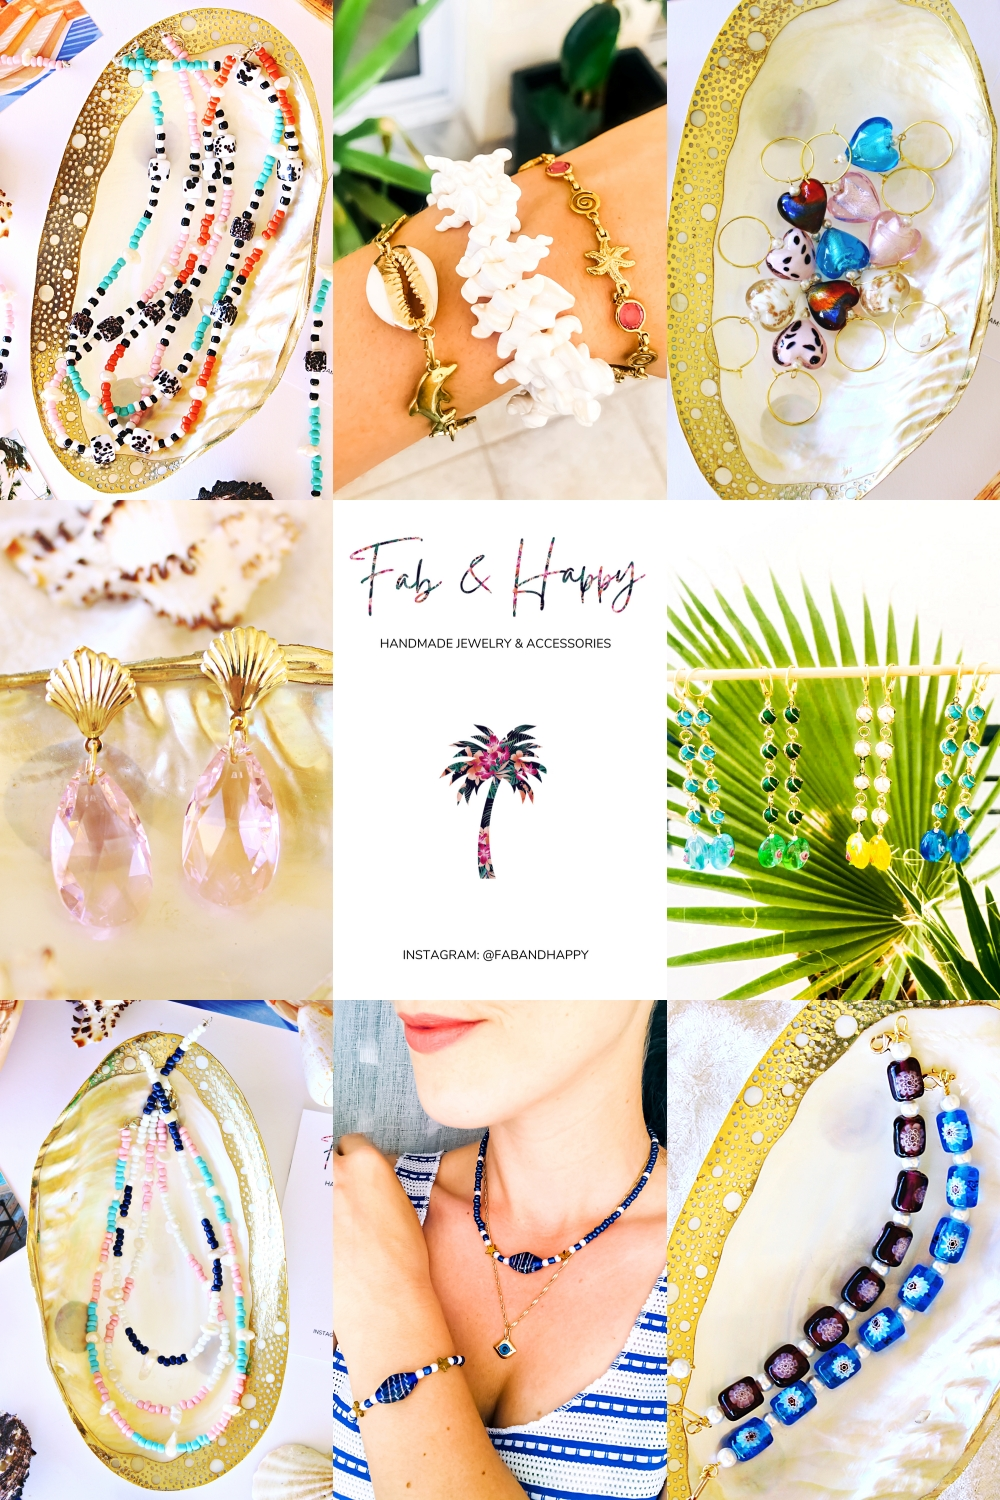 FAB & HAPPY jewelry made with pearls & shells, glass beads